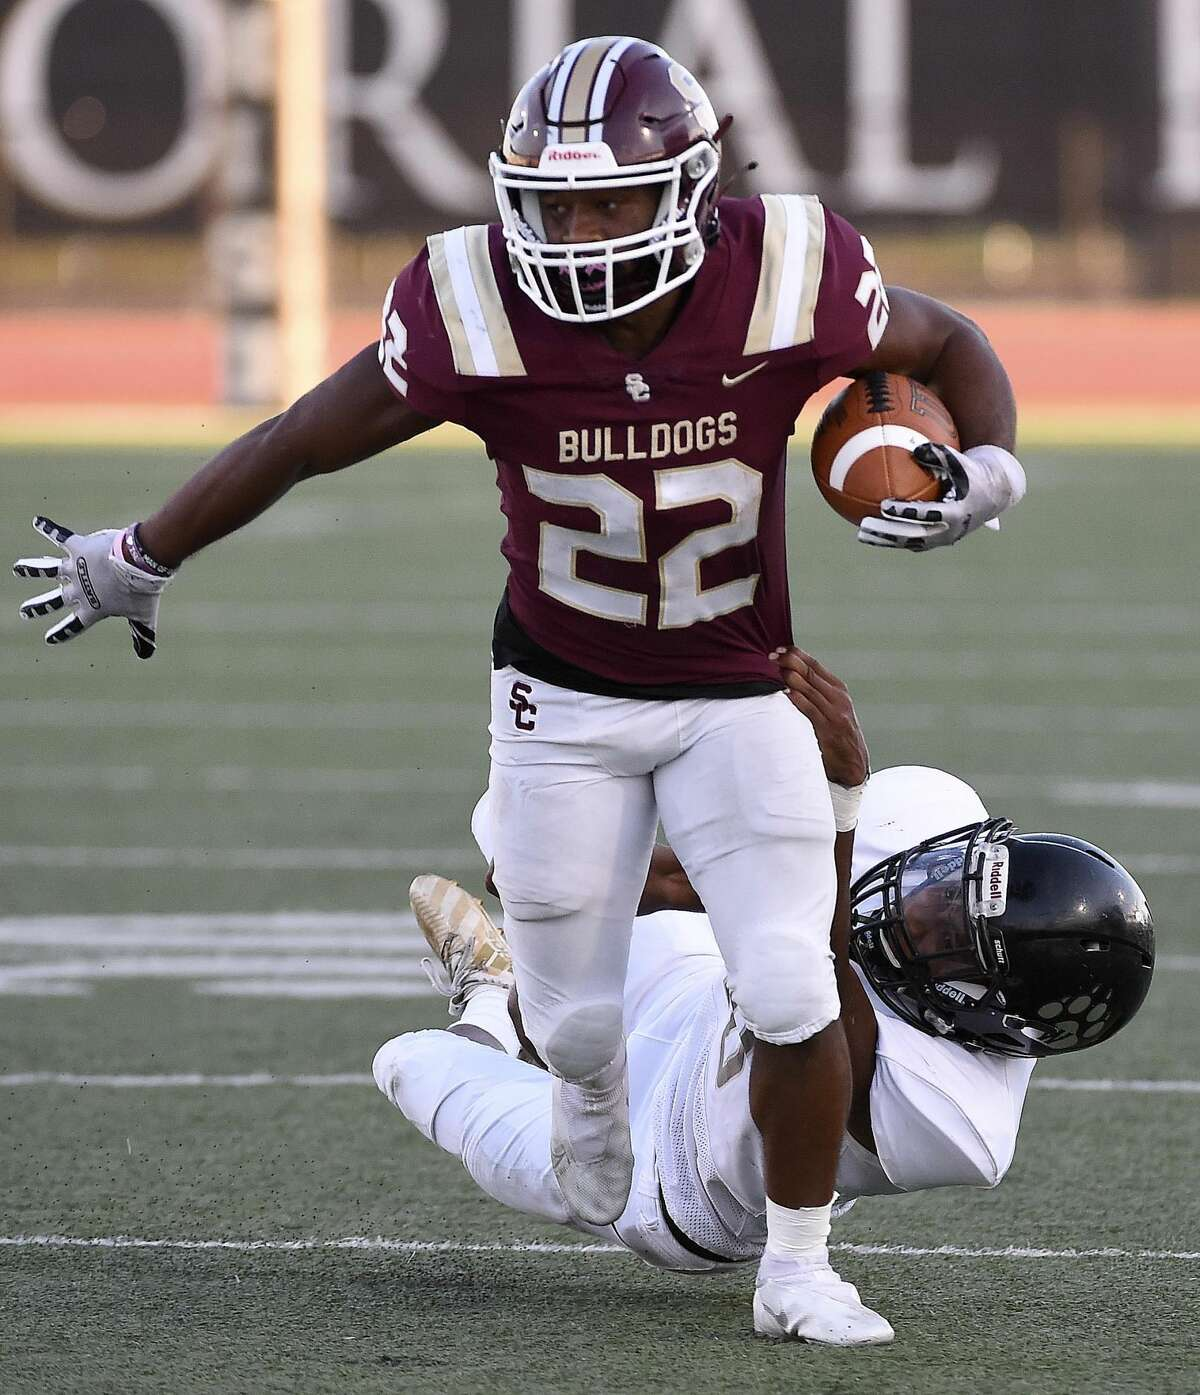 Summer Creek running back Torrie Curry (22) breaks the tackle of Westside defensive back Noah Roberts during the first half of a high school football game, Saturday, Sept. 18, 2021, in Humble.